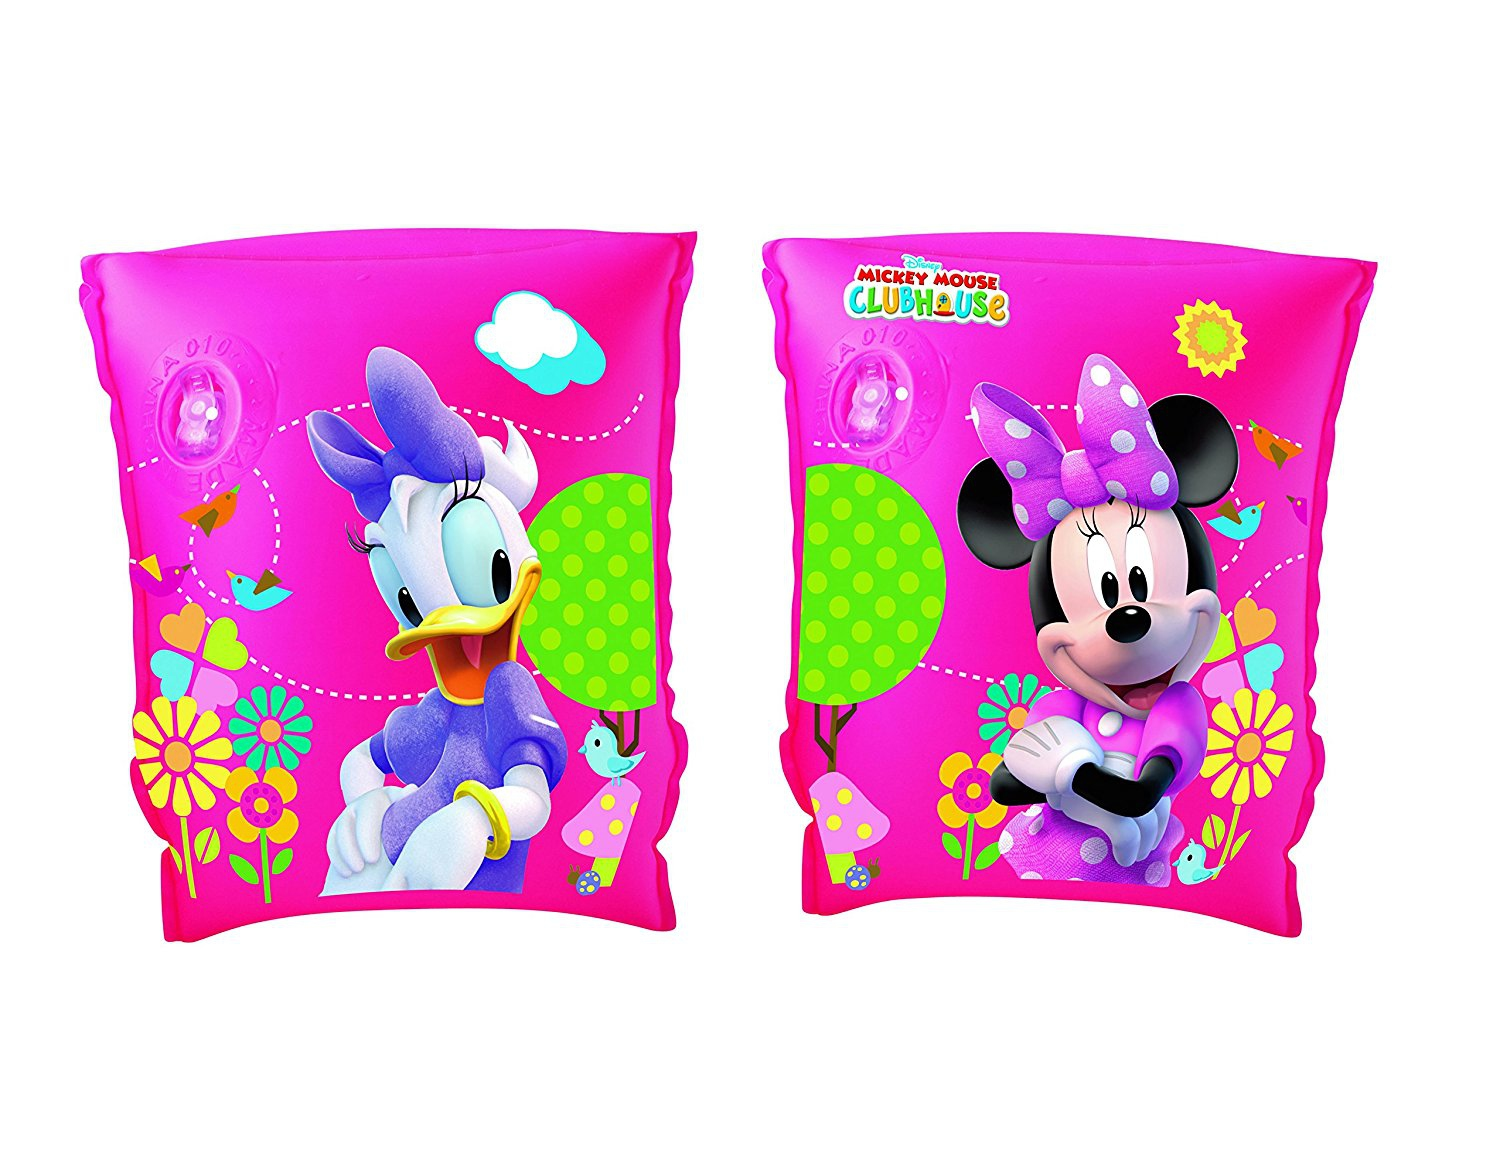 bestway disney minnie mouse daisy d end 2 11 2020 11 06 am